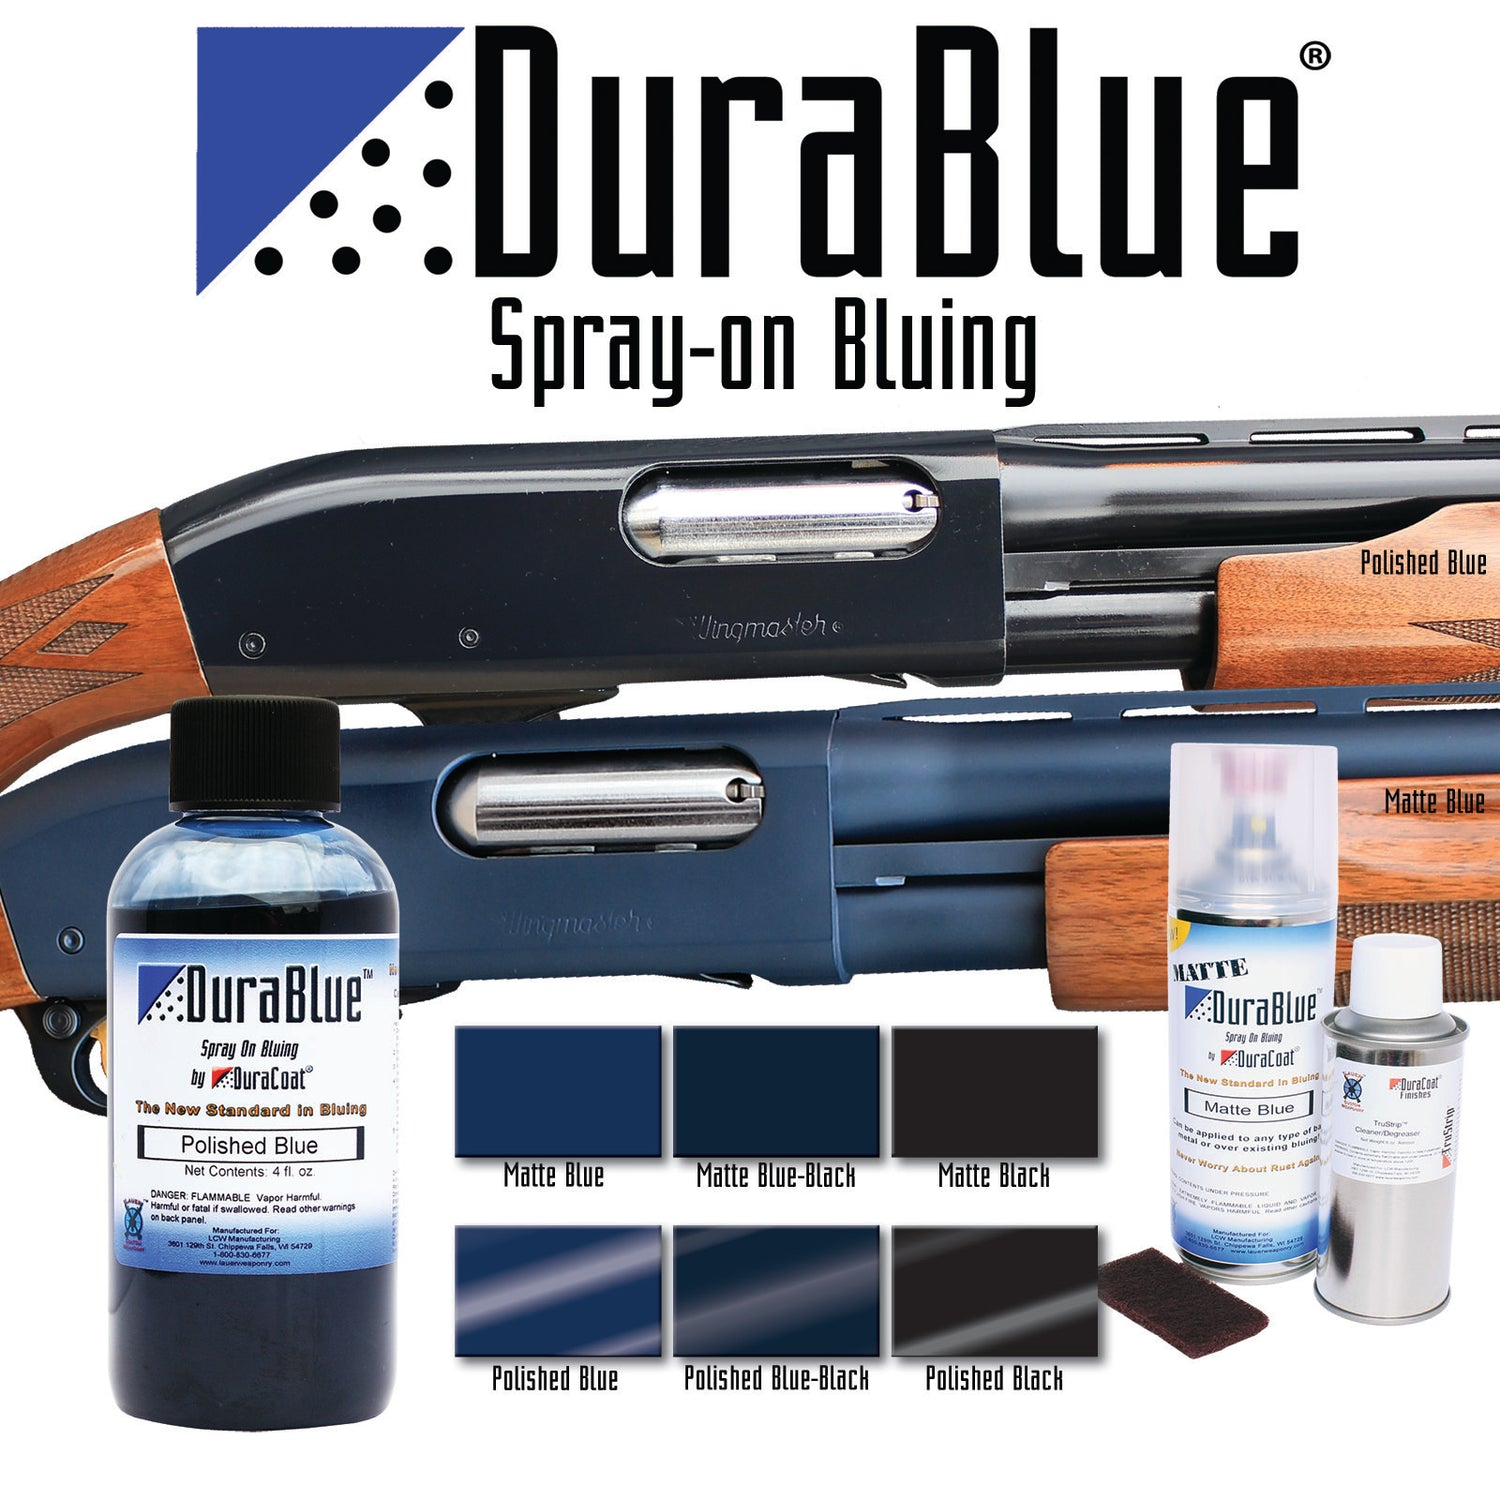 DuraBlue® Spray-On Bluing